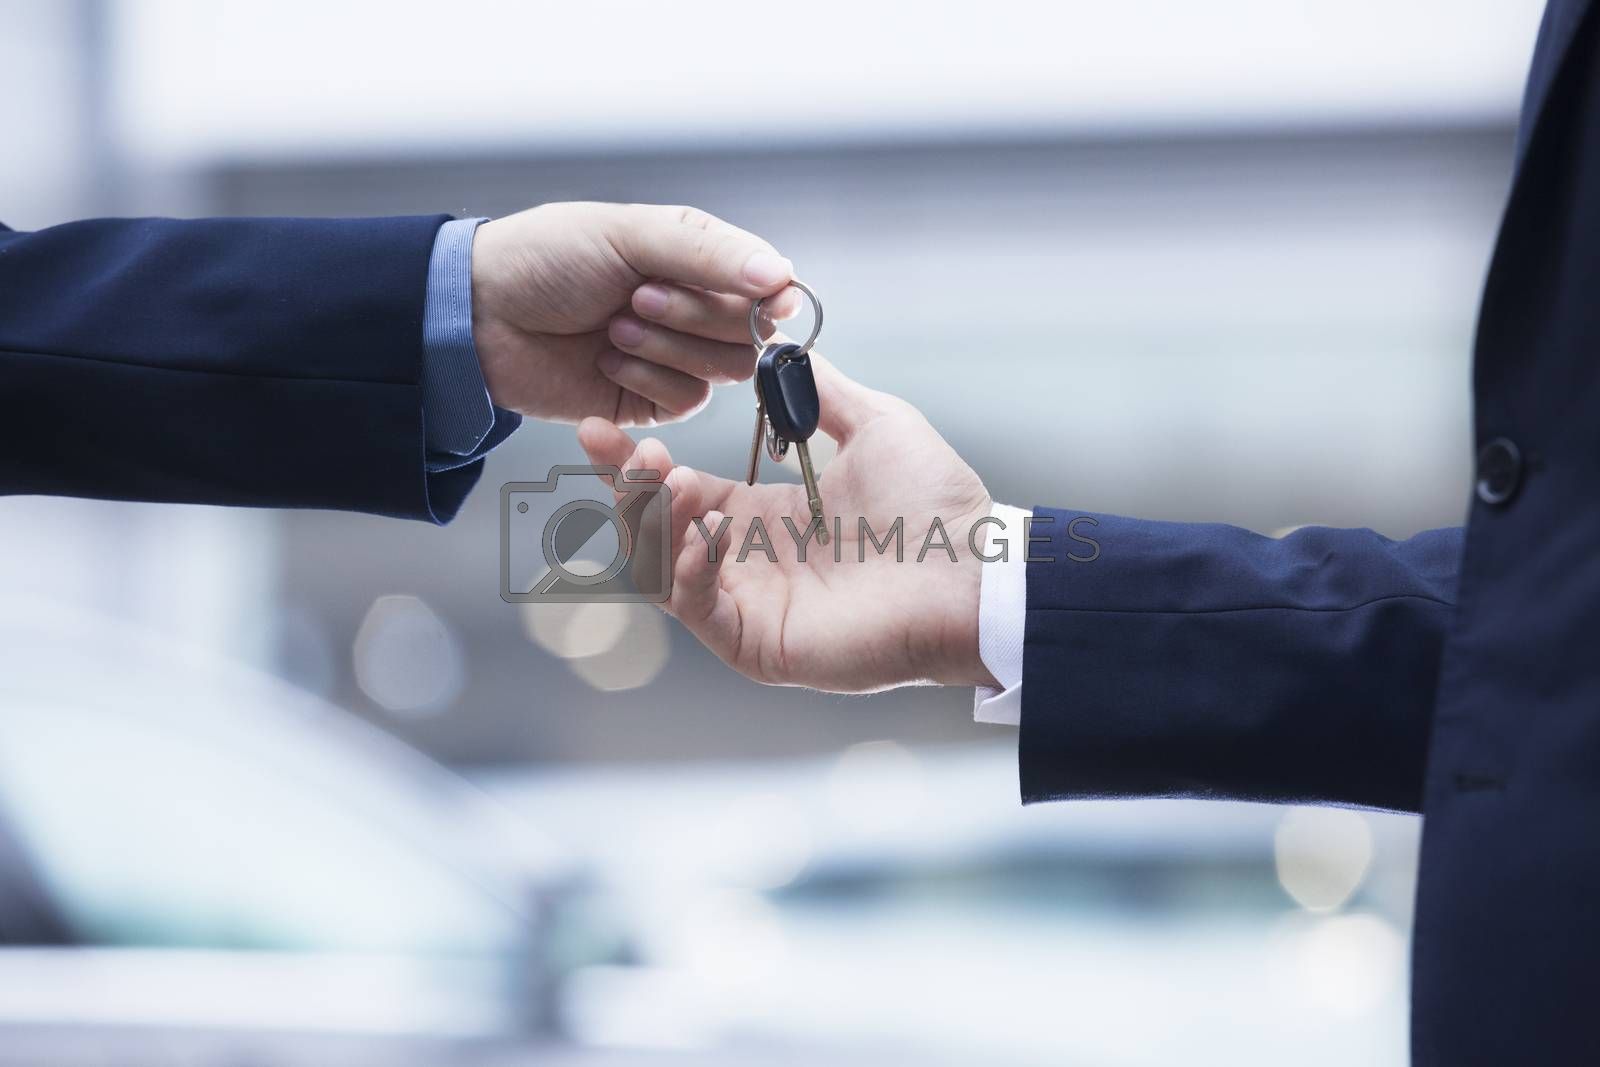 Car salesman handing over the keys for a new car to a young businessman, close-up  by XiXinXing